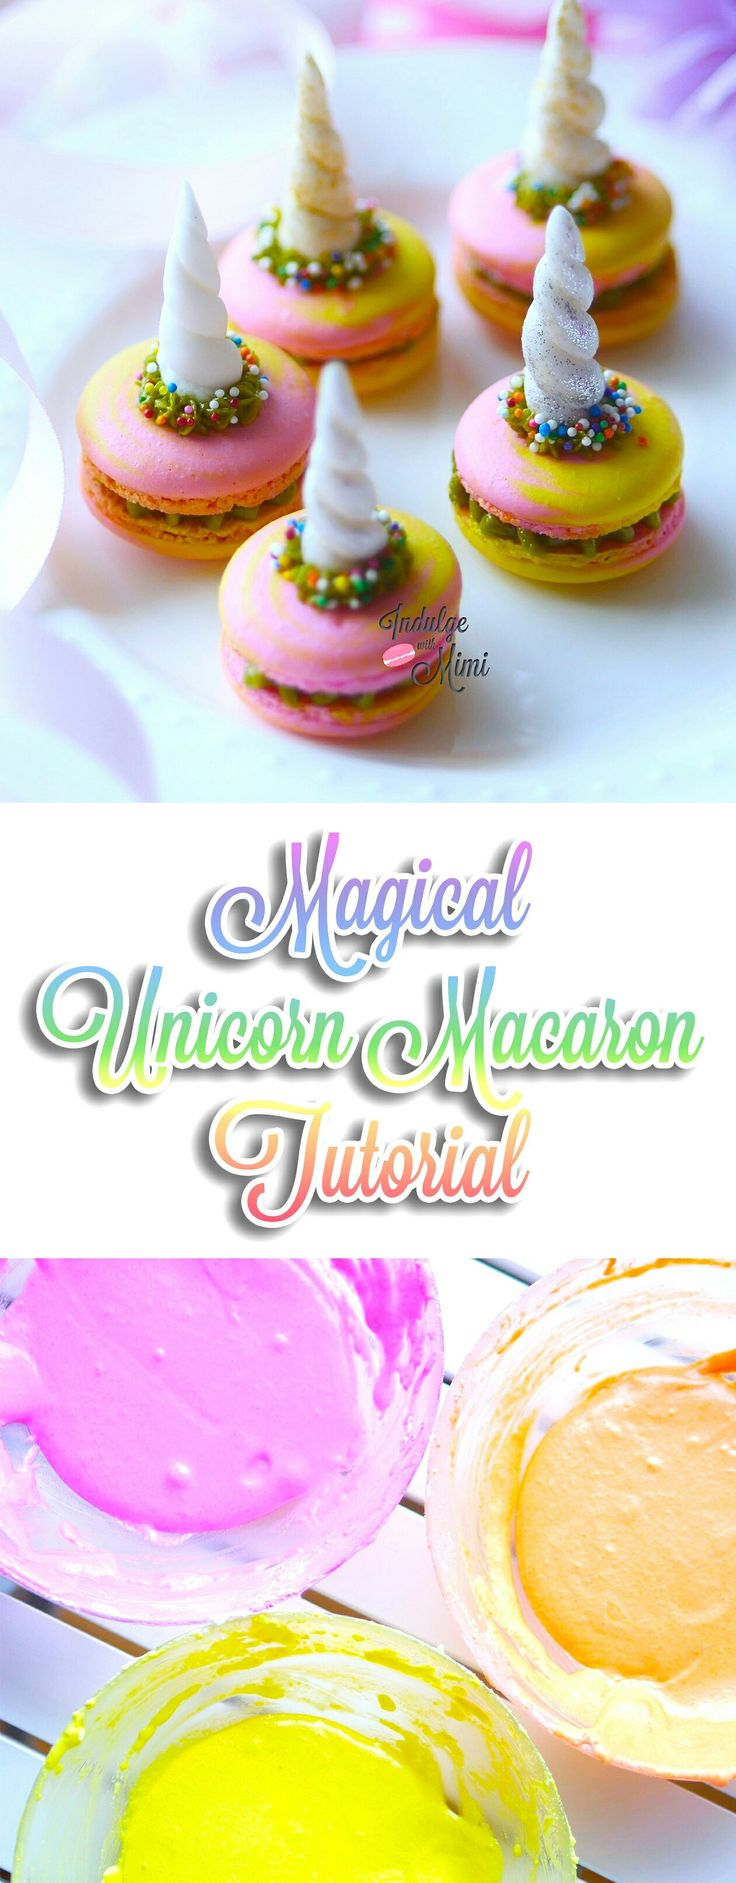 409 best Macarons images on Pinterest | Macaroons, Petit fours and ...